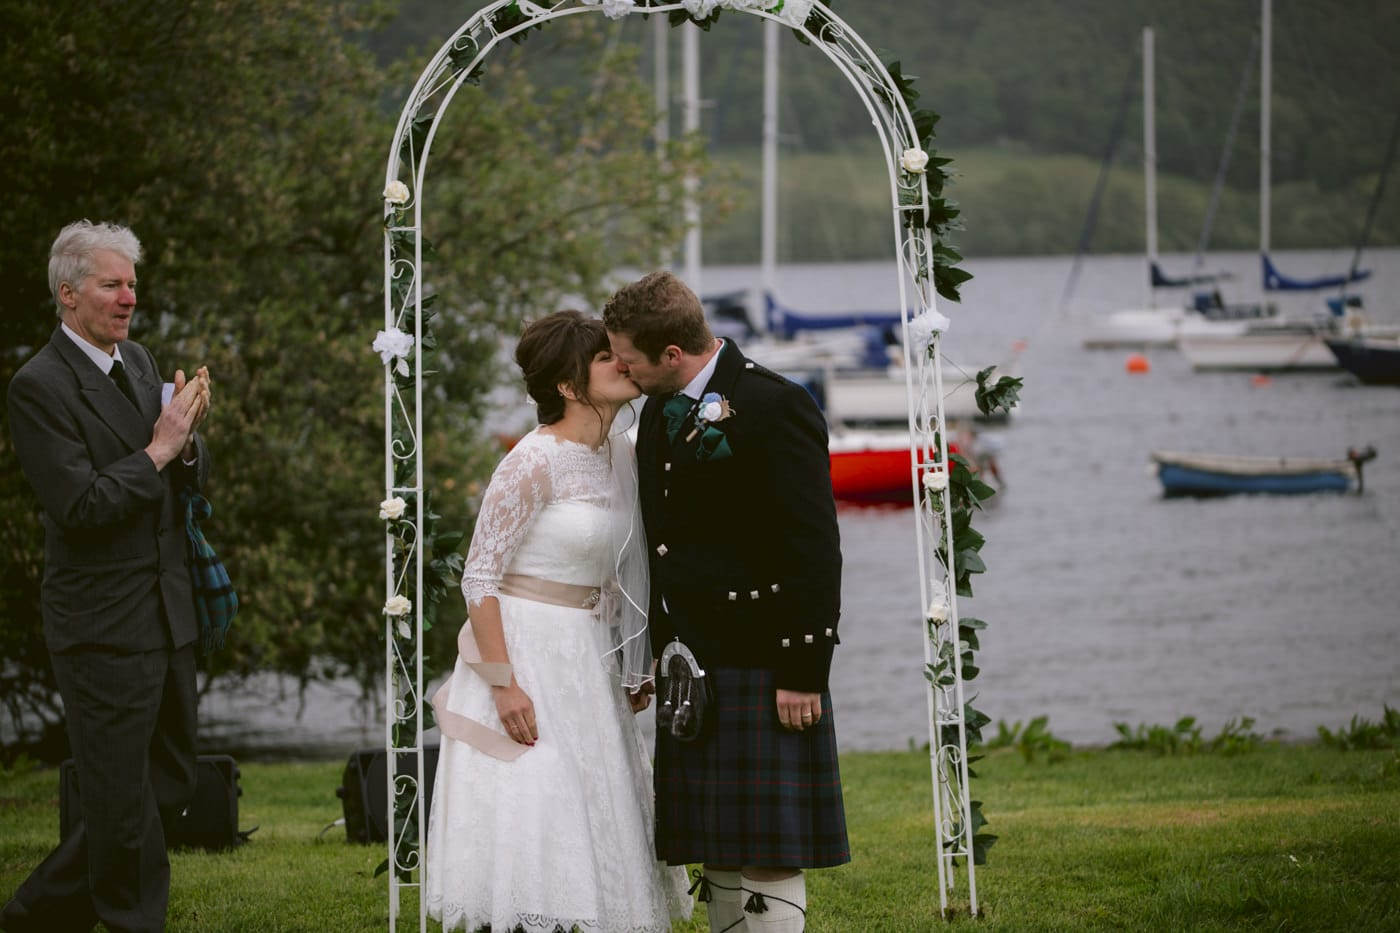 Wedding Ceremony Kiss and Married at Tipi Wedding On The Shores Of Ullswater